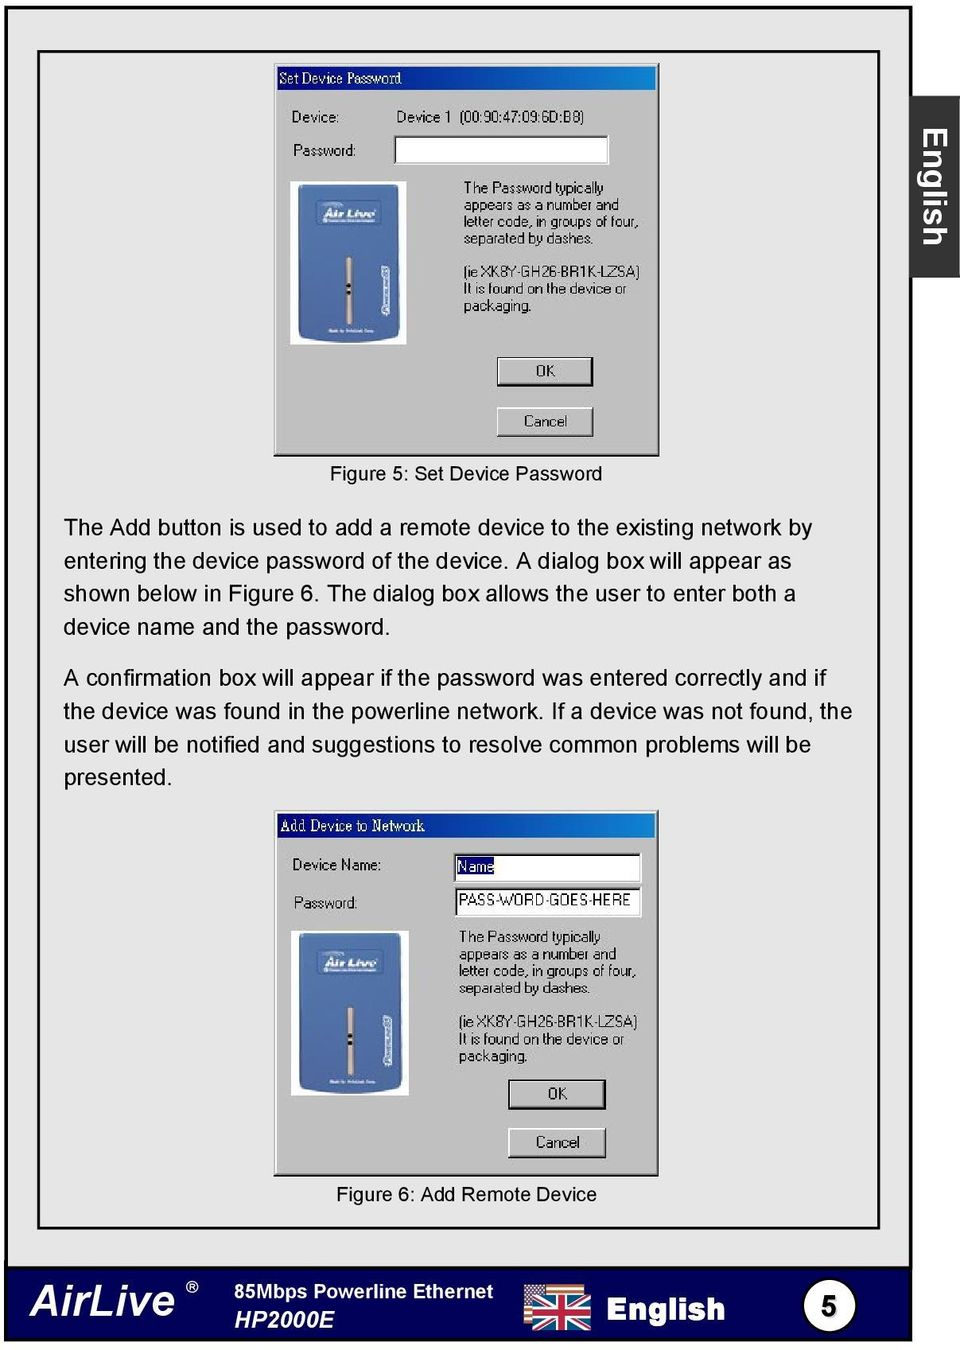 A confirmation box will appear if the password was entered correctly and if the device was found in the powerline network.